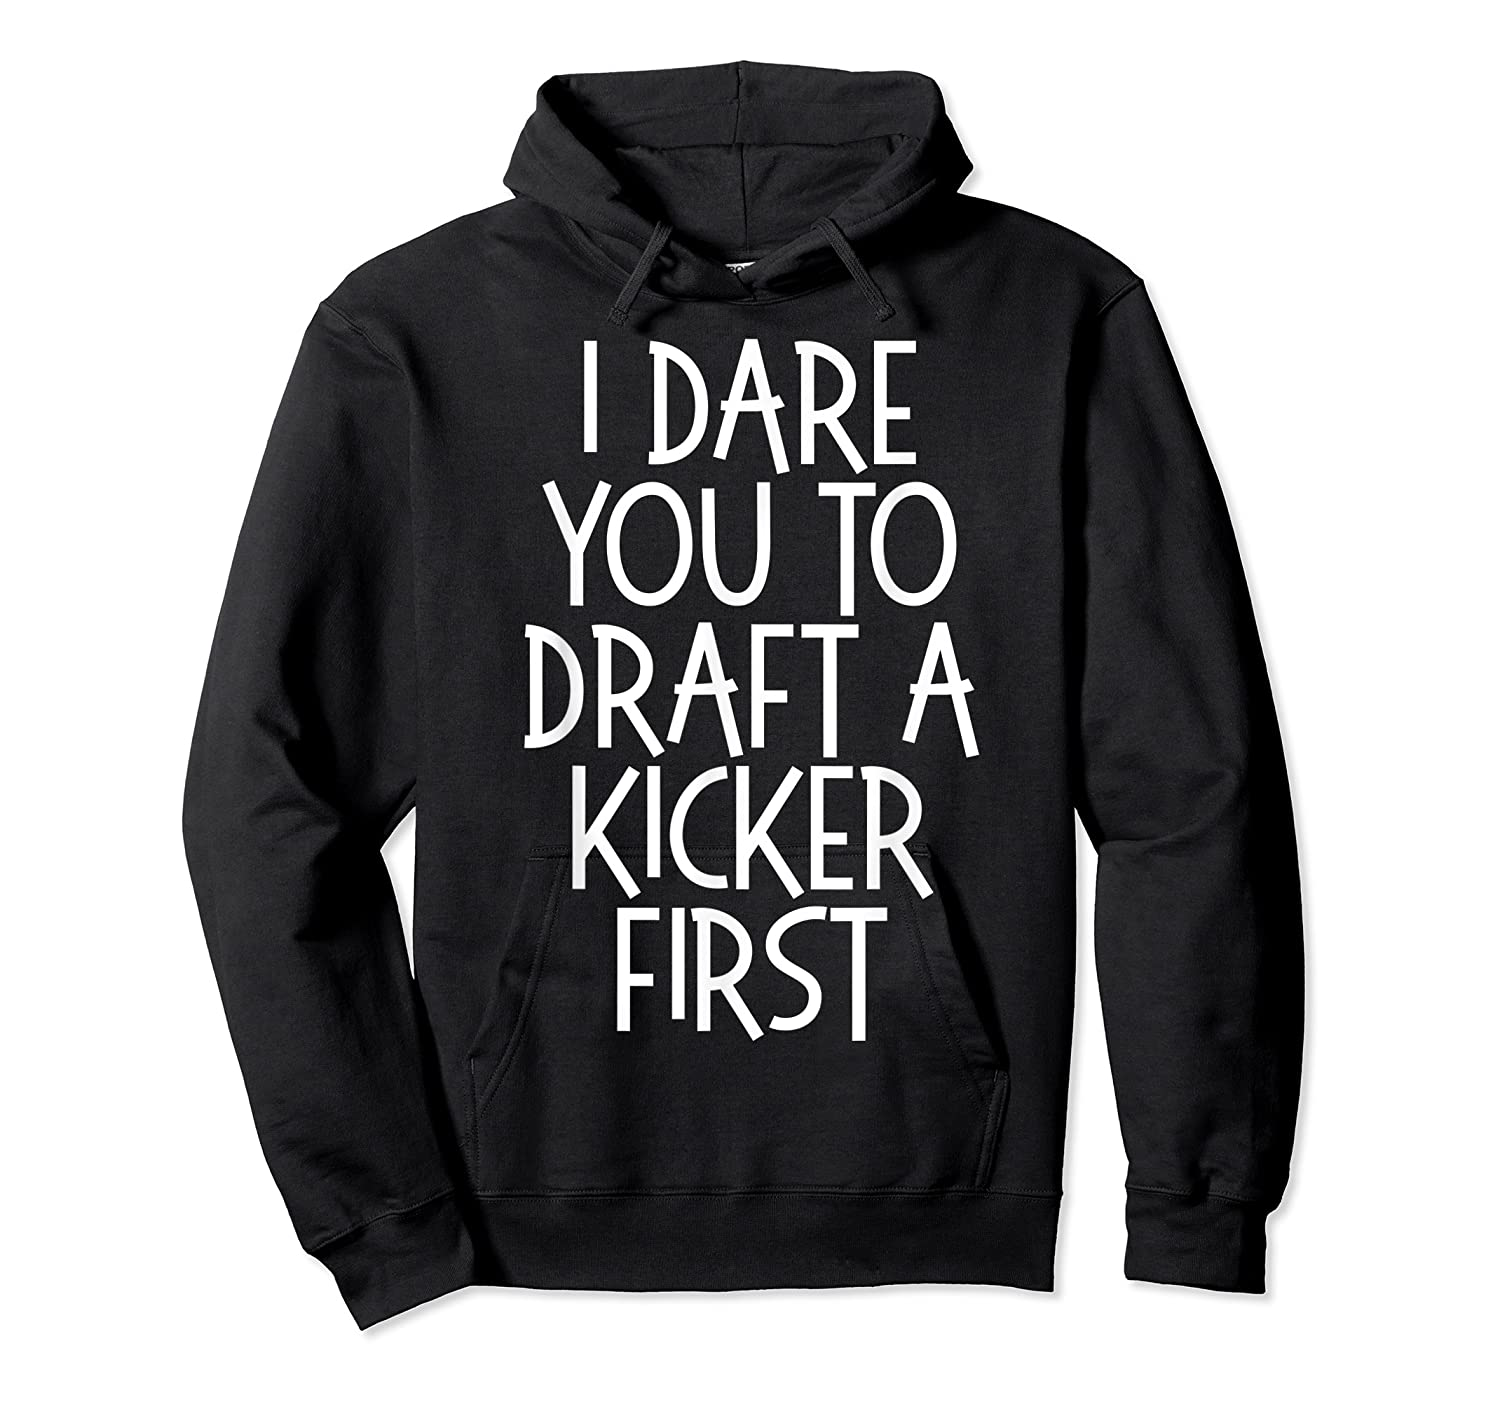 Funny Fantasy Draft Gear I Dare You To Draft A Kicker First T-shirt Unisex Pullover Hoodie